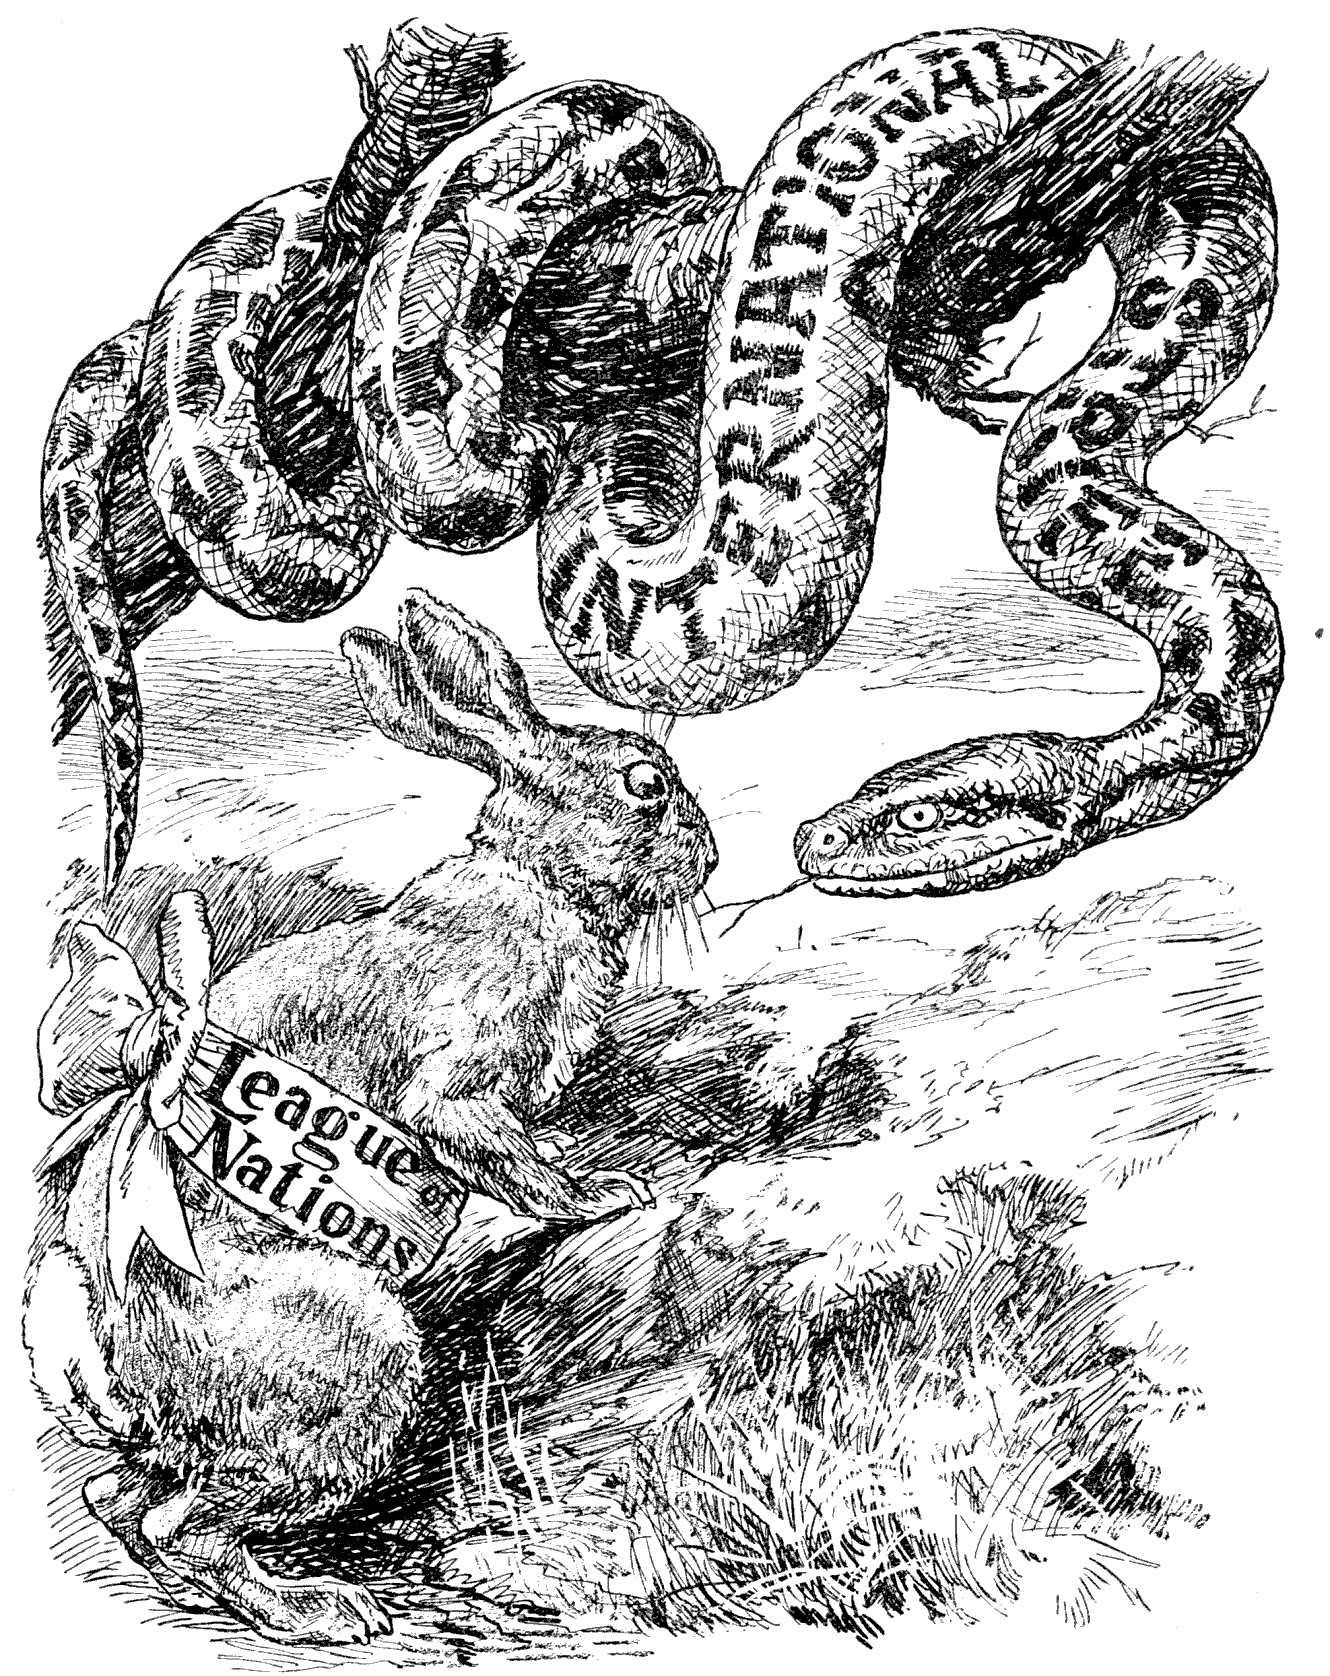 League of nations cartoon